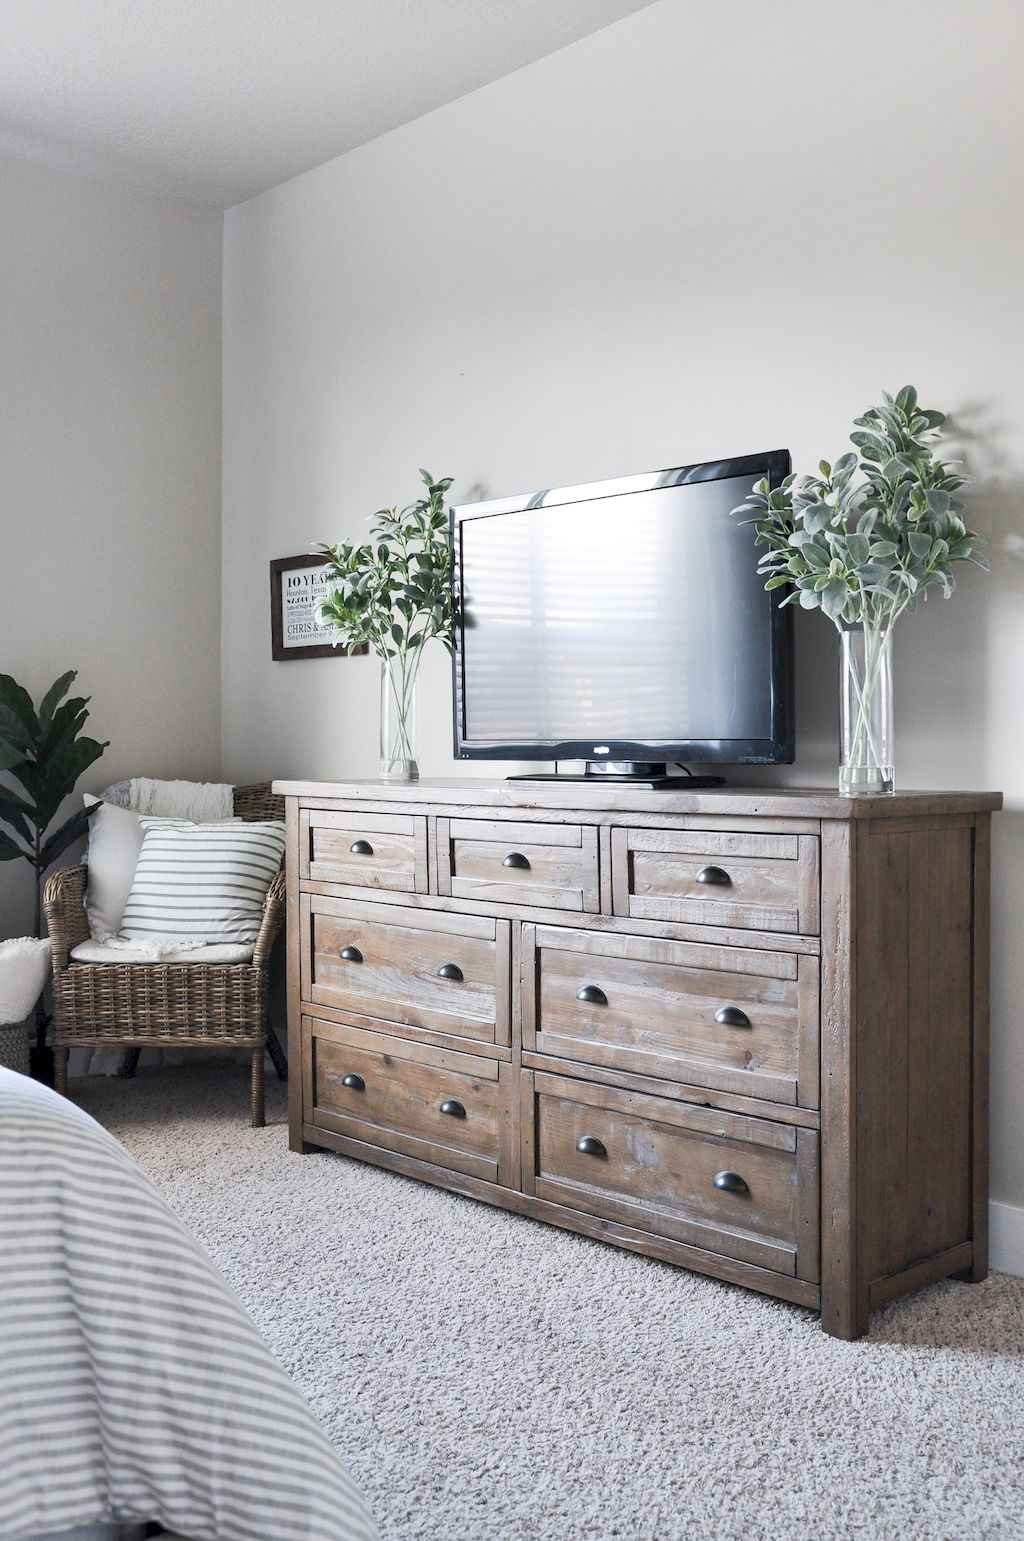 Couples first apartment decorating ideas (41)